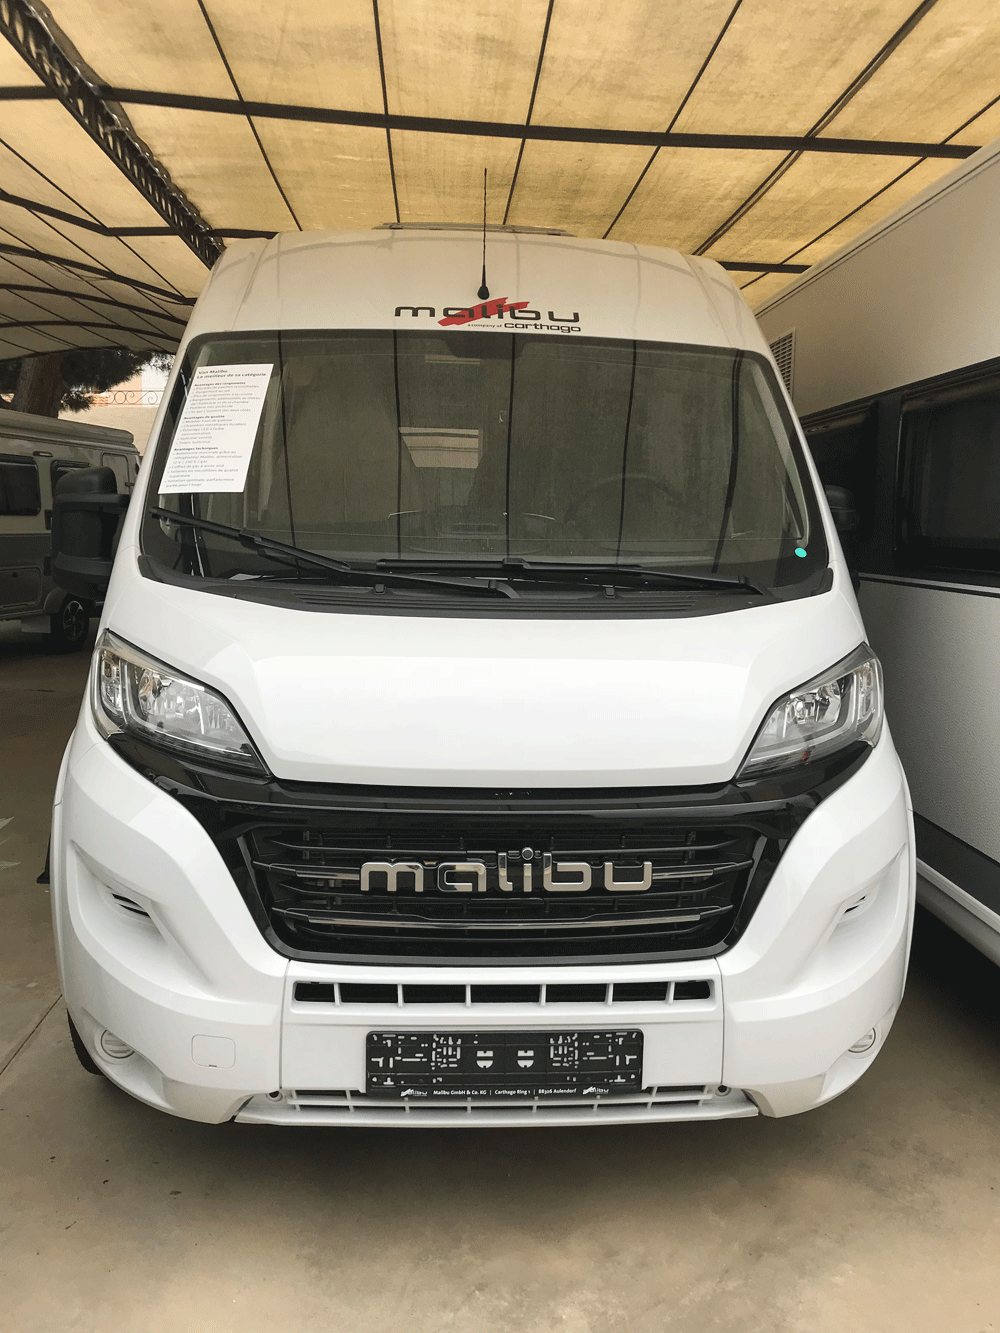 malibu 600 DB low bed caravar (9)